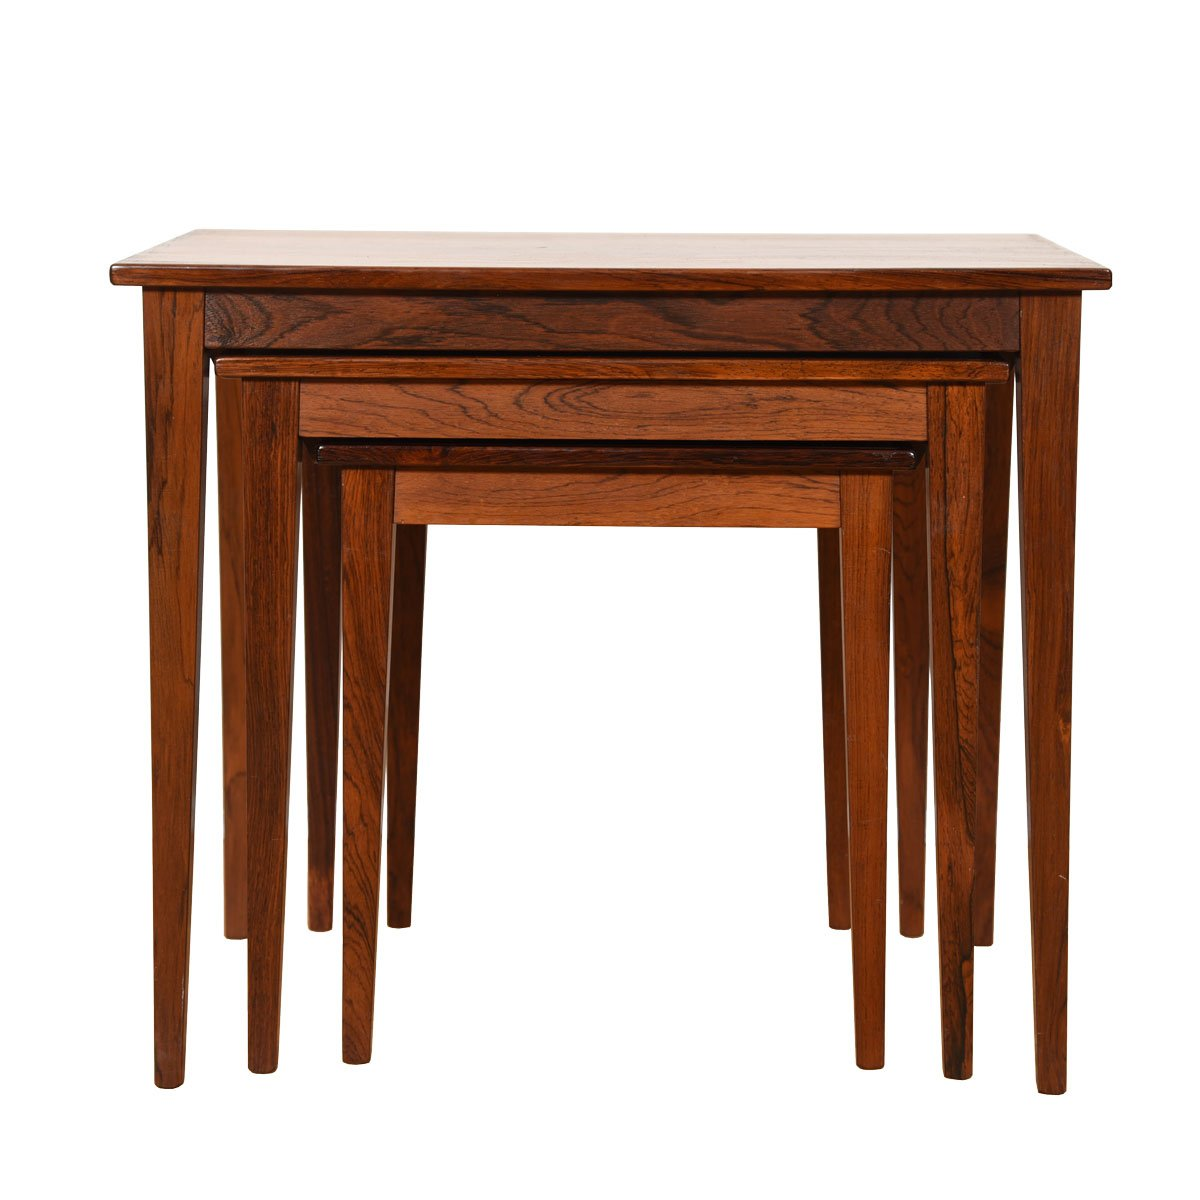 Set of 3 Danish Modern Rosewood Nesting Tables